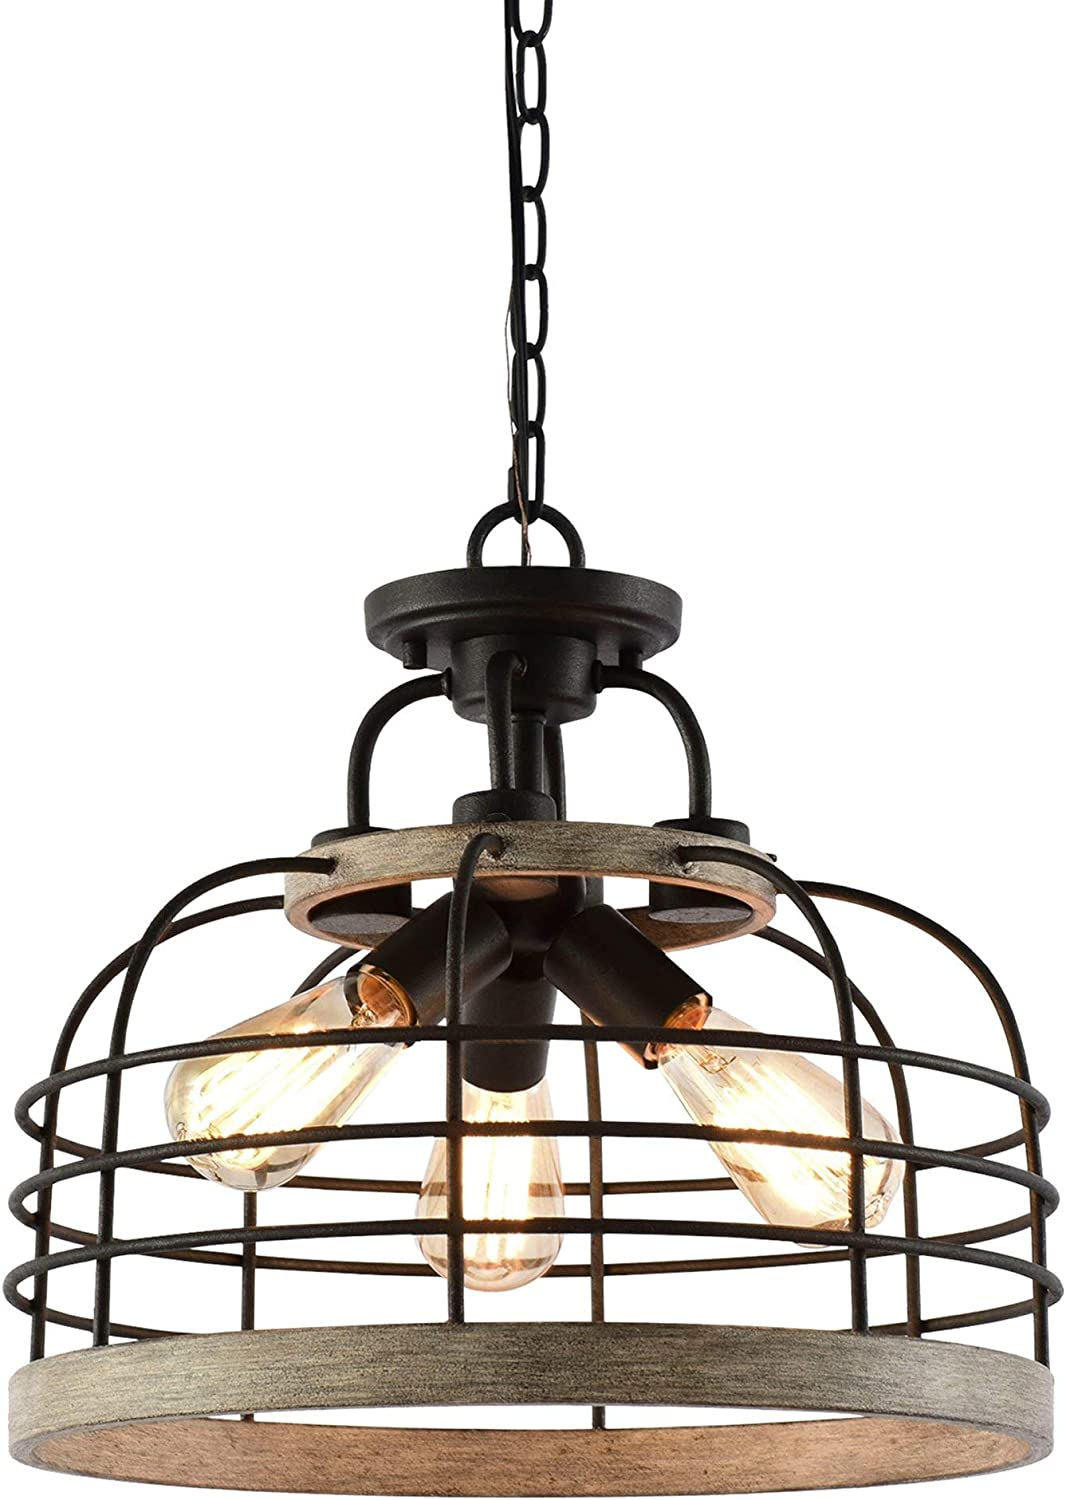 "Kira Home Wrightwood 16.5"" 3-Light Industrial Farmhouse Semi Flush Convertible Pendant Light with Cage Shade, White Wood Style + Textured Black Finish"